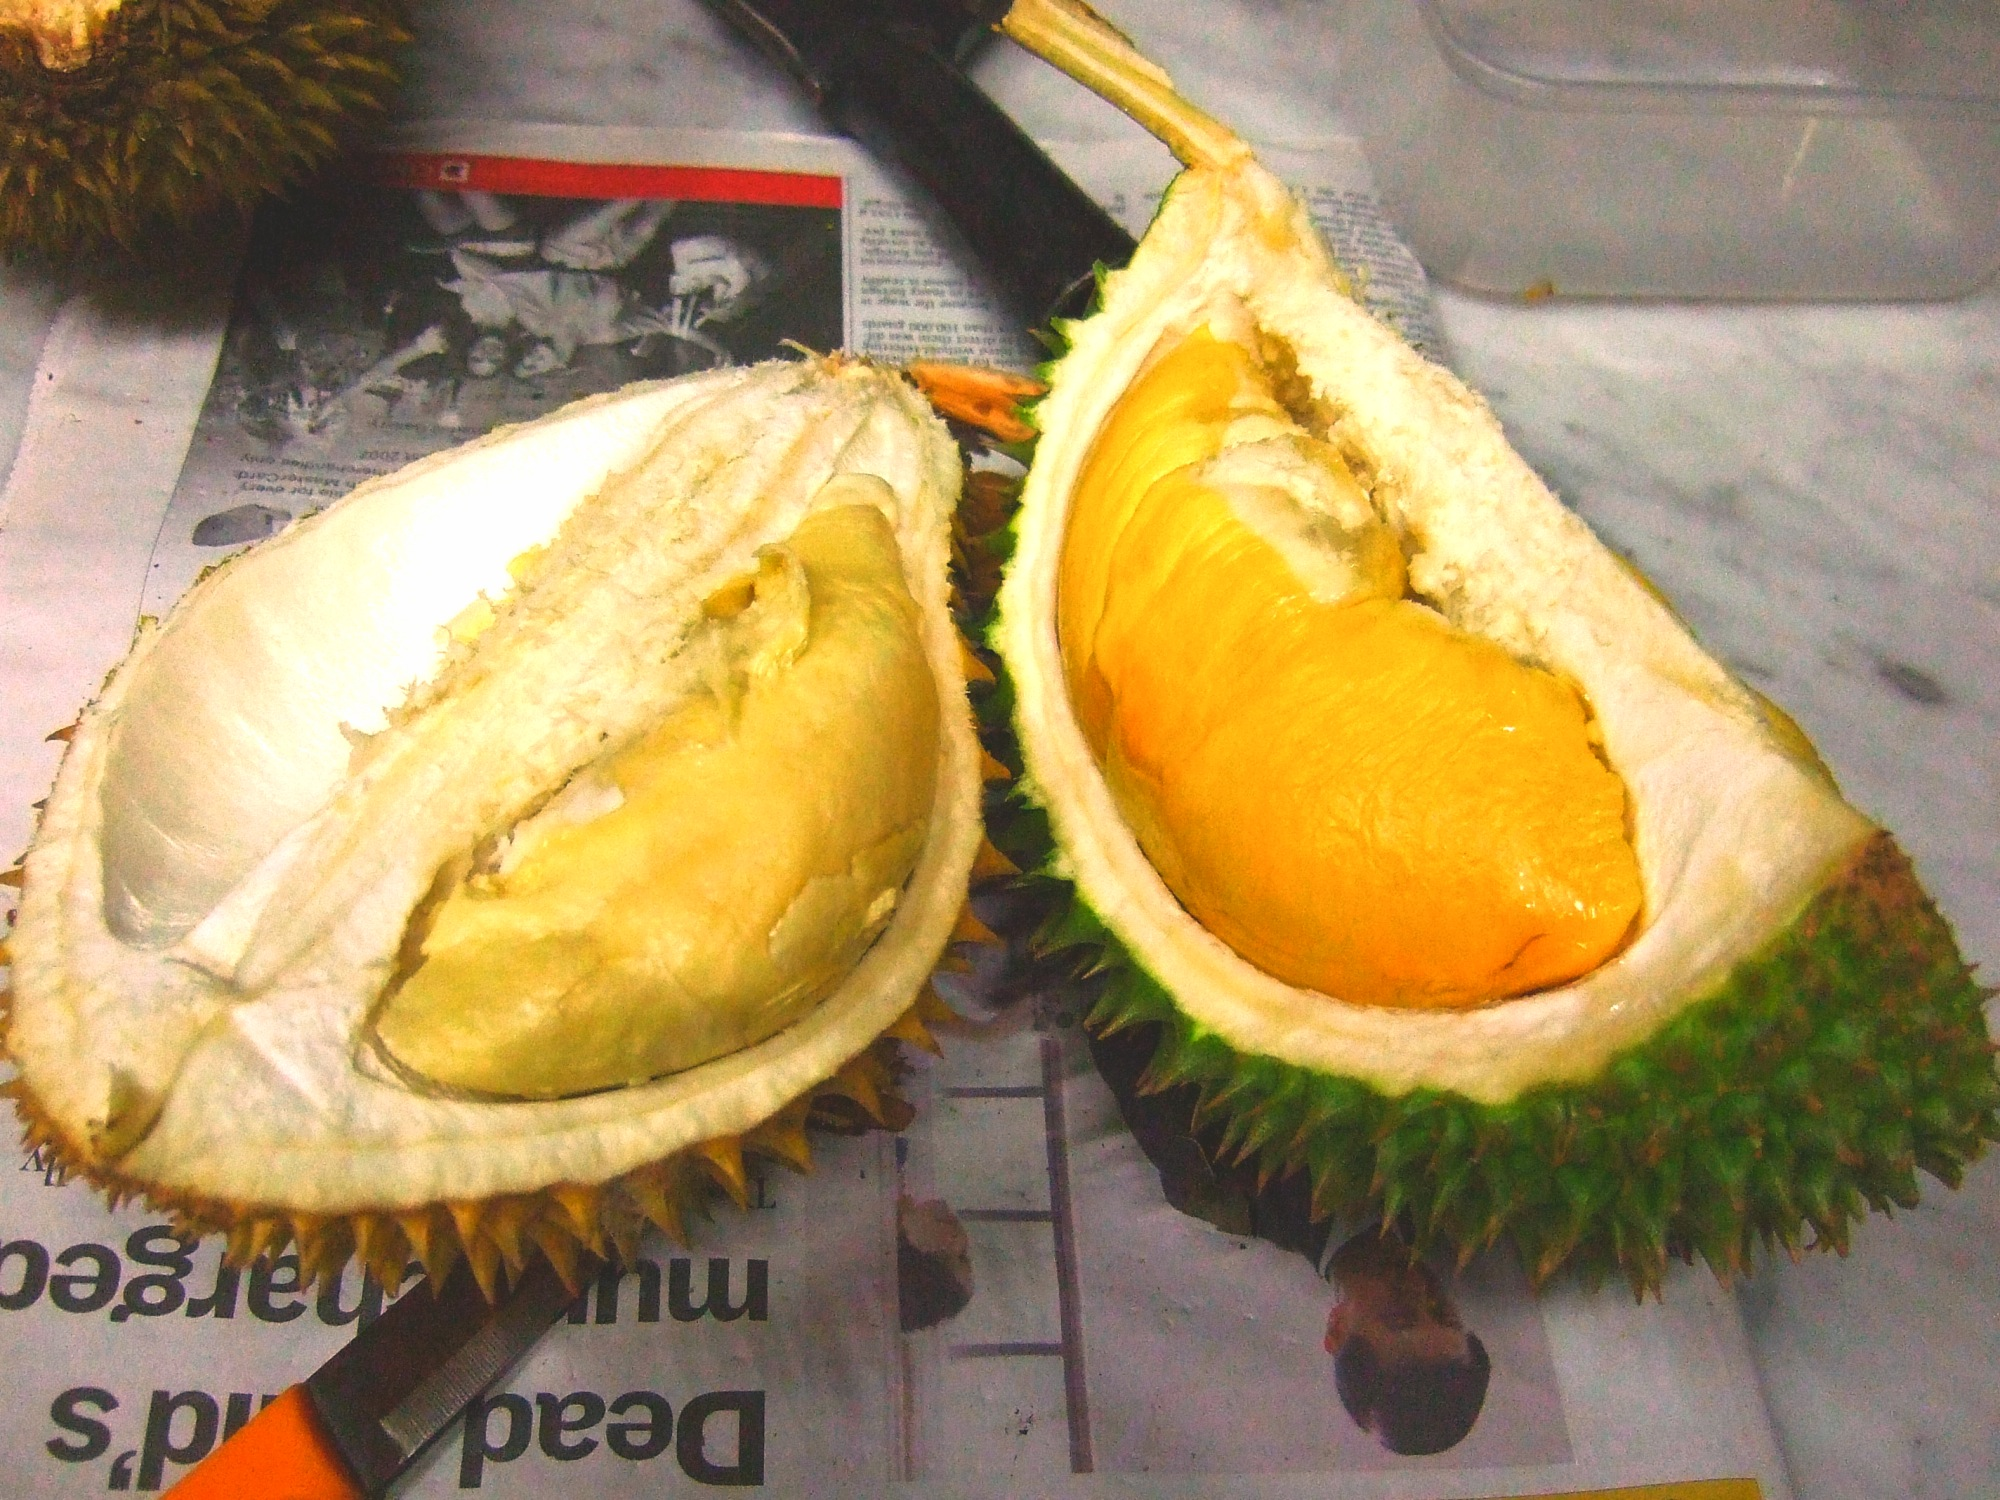 fruit bar durian fruit